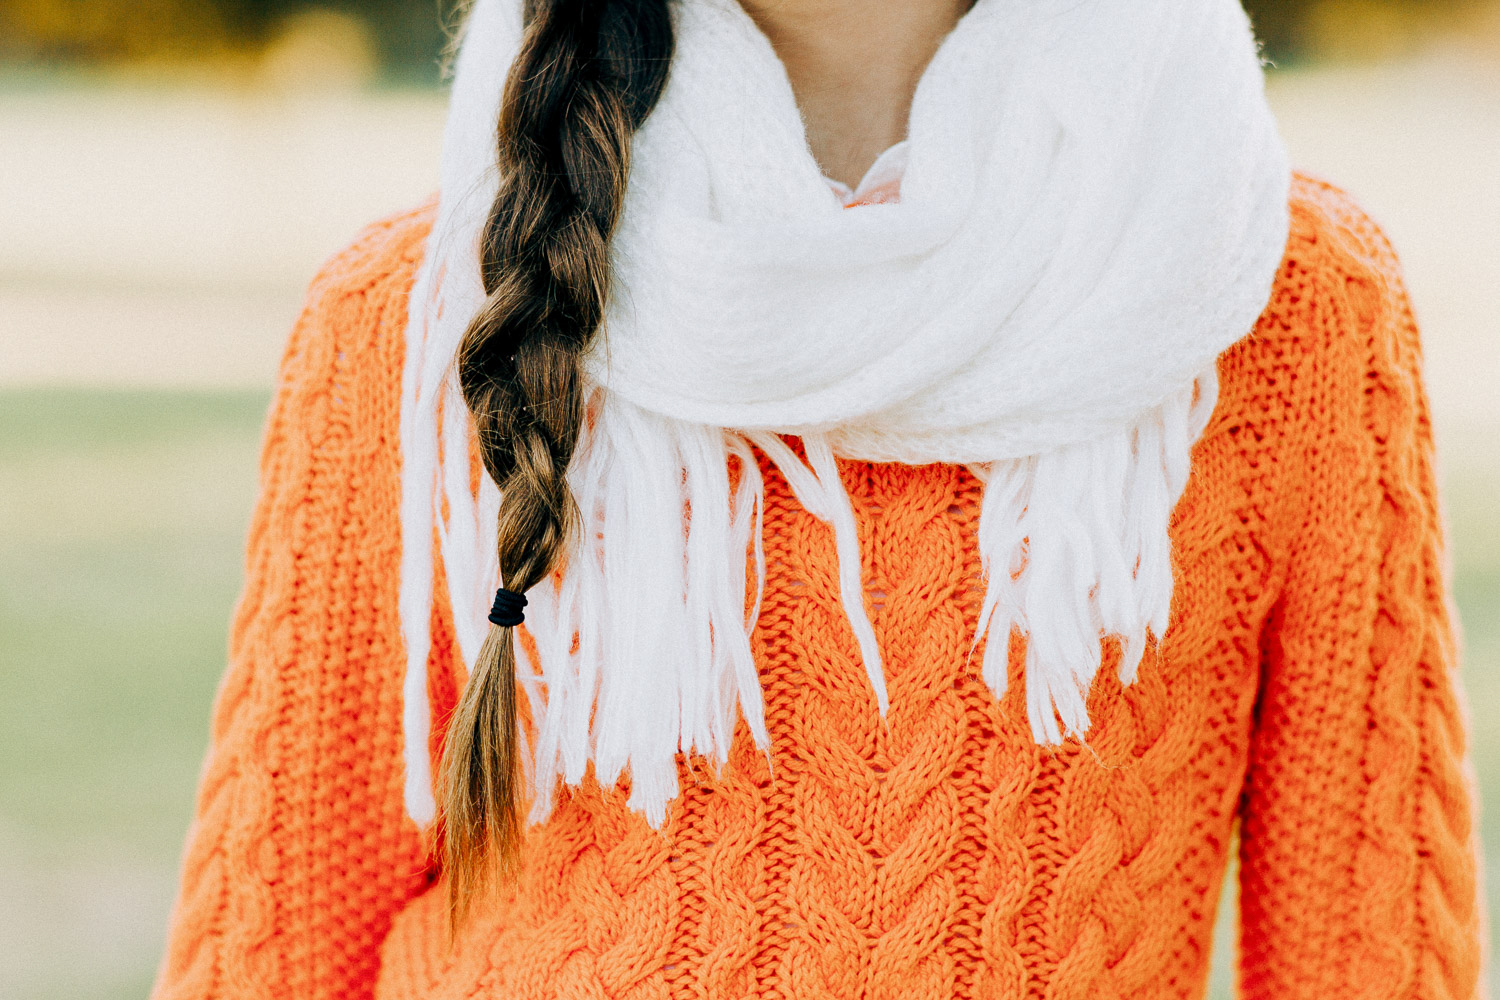 Image of the details of the orange sweater and white scraf